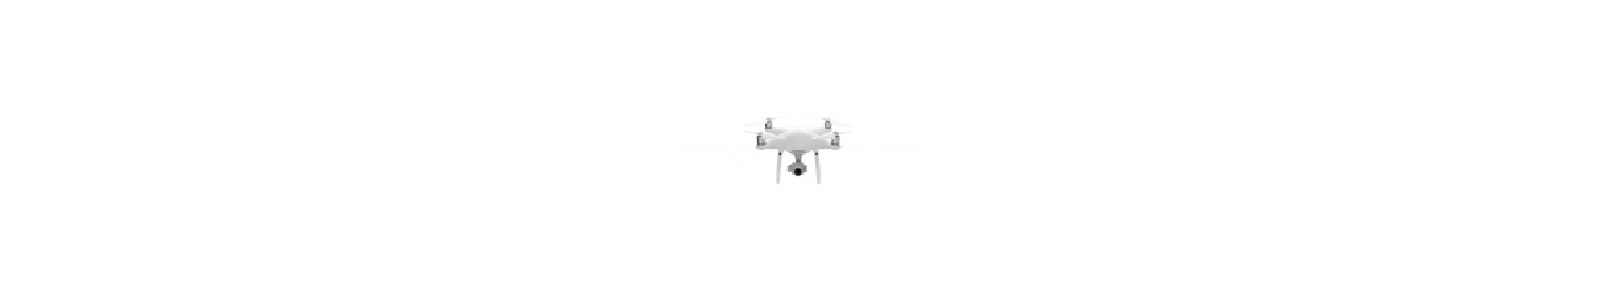 DJI Phantom Series